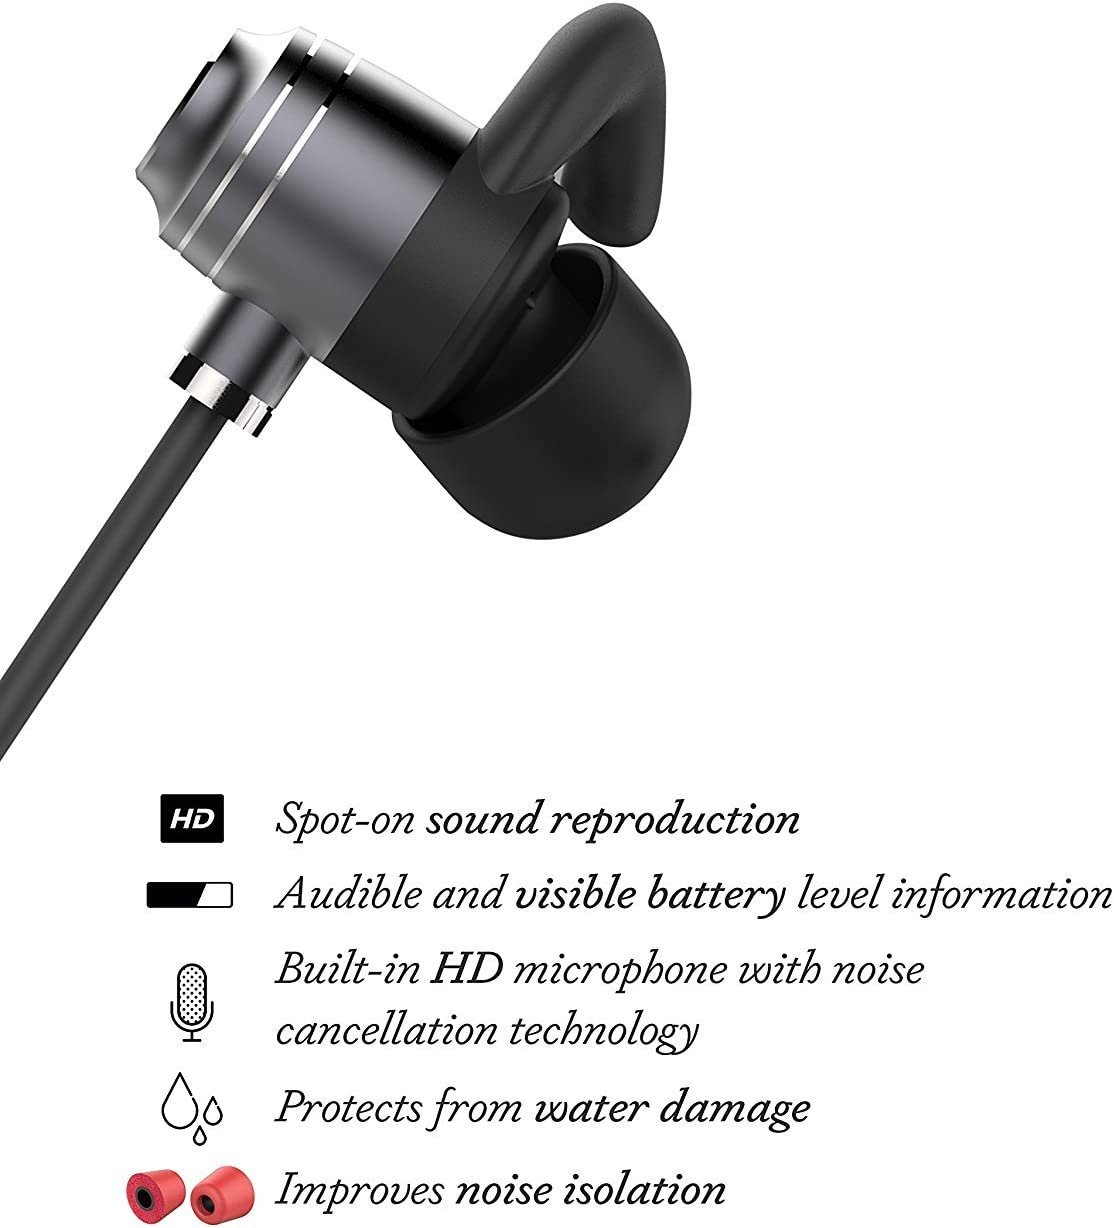 truwire Huawei P8 Bluetooth Headset In-Ear Running Earbuds IPX4 Waterproof with Mic Stereo Earphones works with CVC 6.0 Noise Cancellation Apple Samsung,Google Pixel,LG